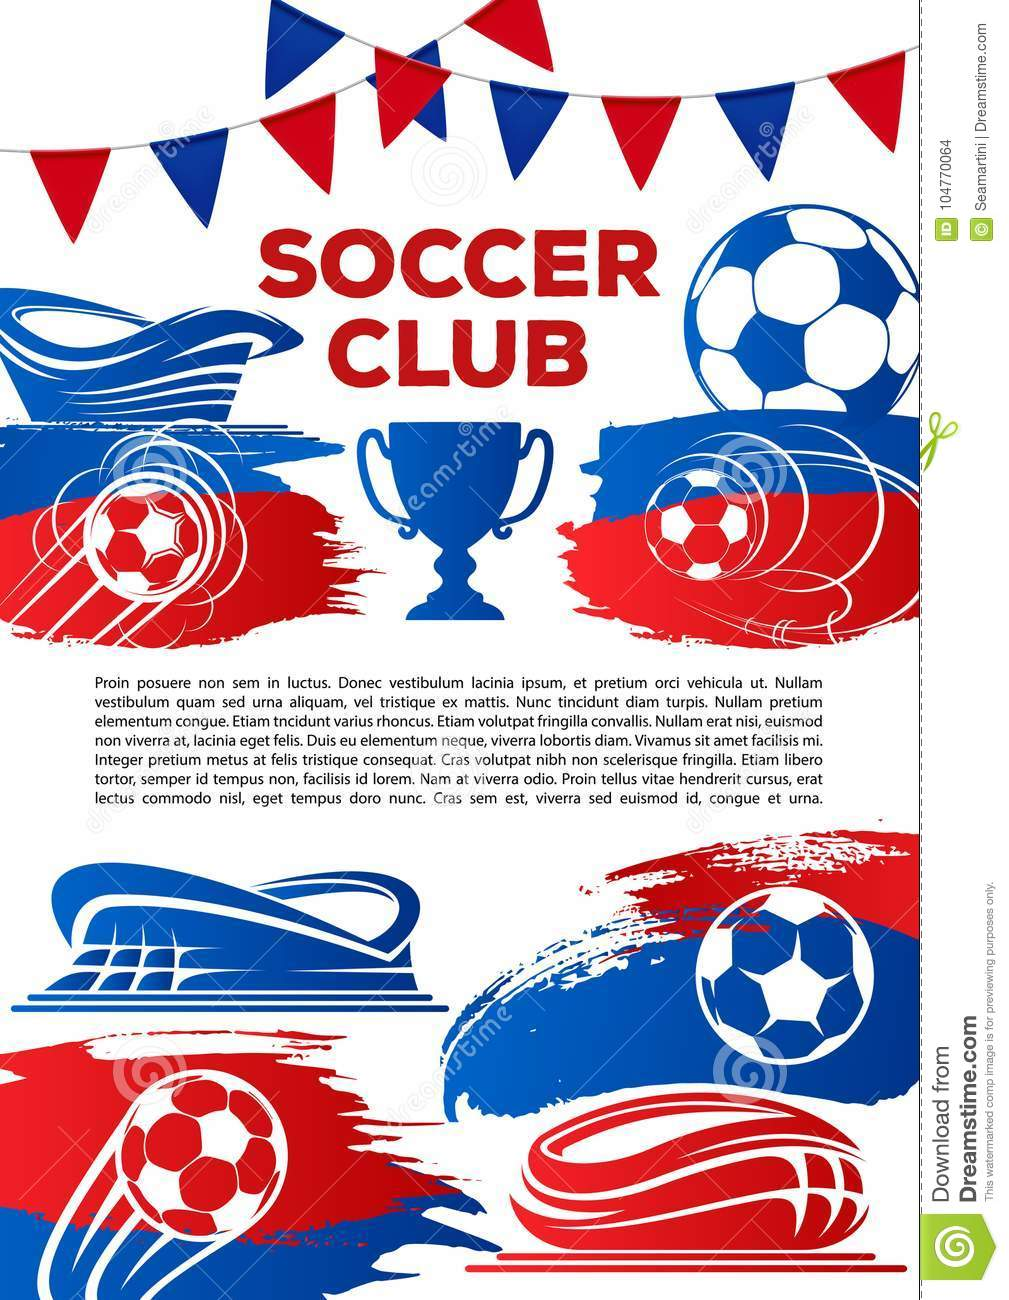 Soccer Club Poster Template For Football College League Tournament Game Vector Design Of Ball Winner Cup Award Goal Victory At Stadium